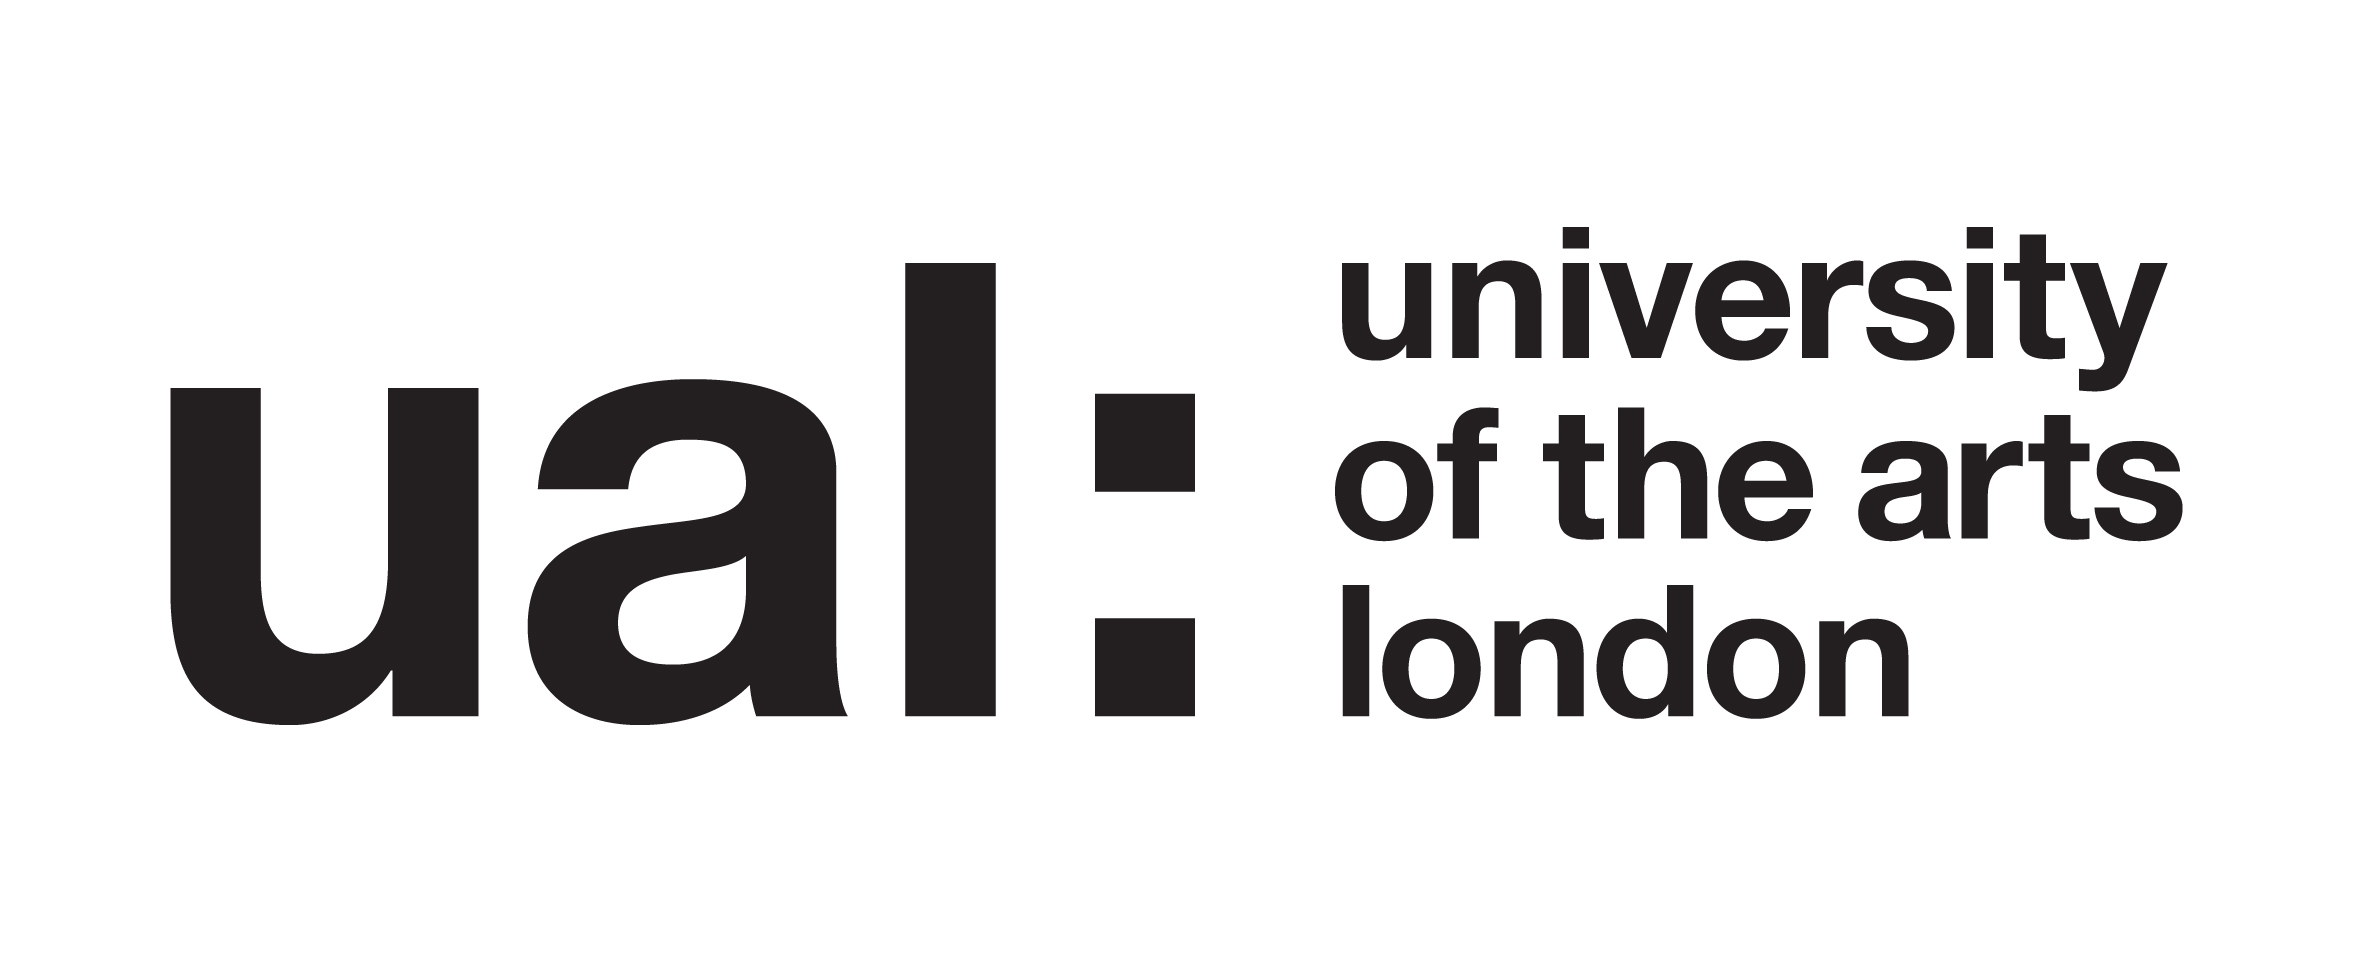 MassChallenge UK Info Session @ UAL Tickets, Wed, 18 Mar